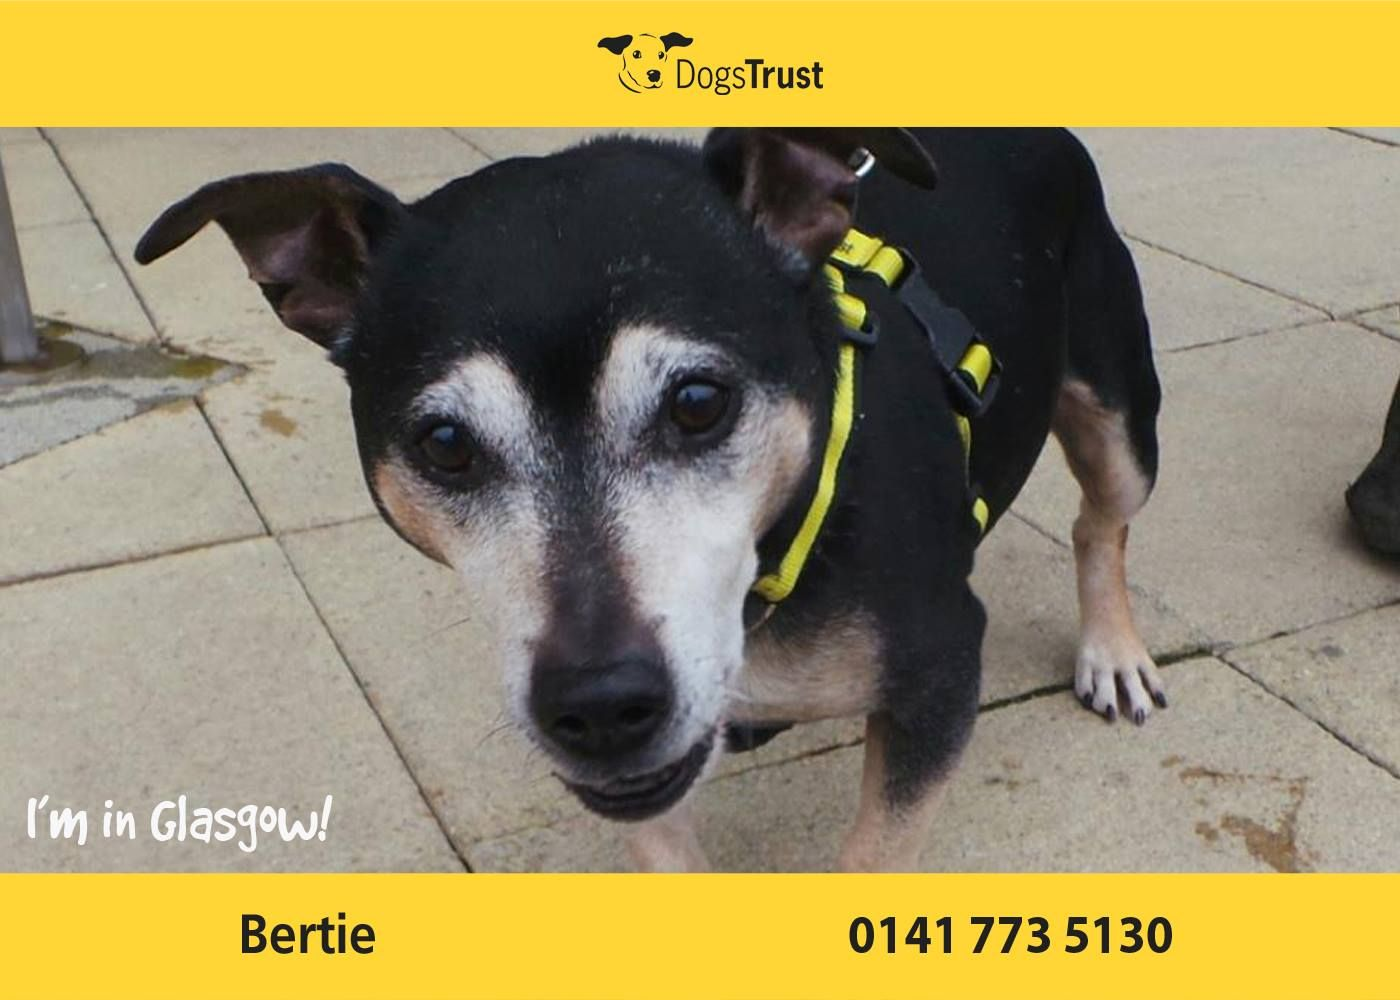 Bertie at Dogs Trust Glasgow is a handsome chap who loves